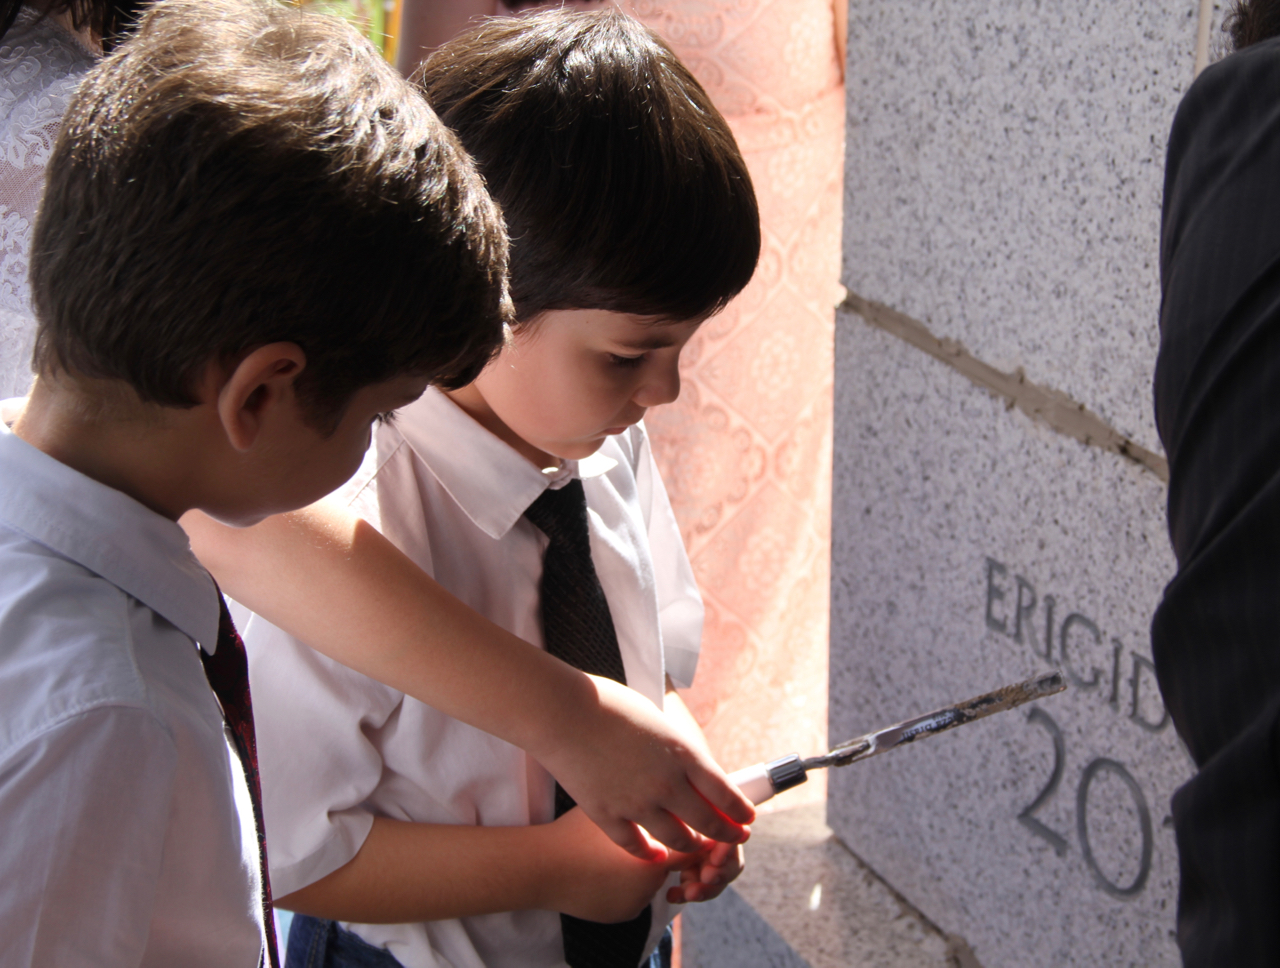 Children take turns applying mortar to the cornerstone of the Fortaleza Brazil Temple after the cornerstone ceremony had concluded Sunday, June 2, 2019.